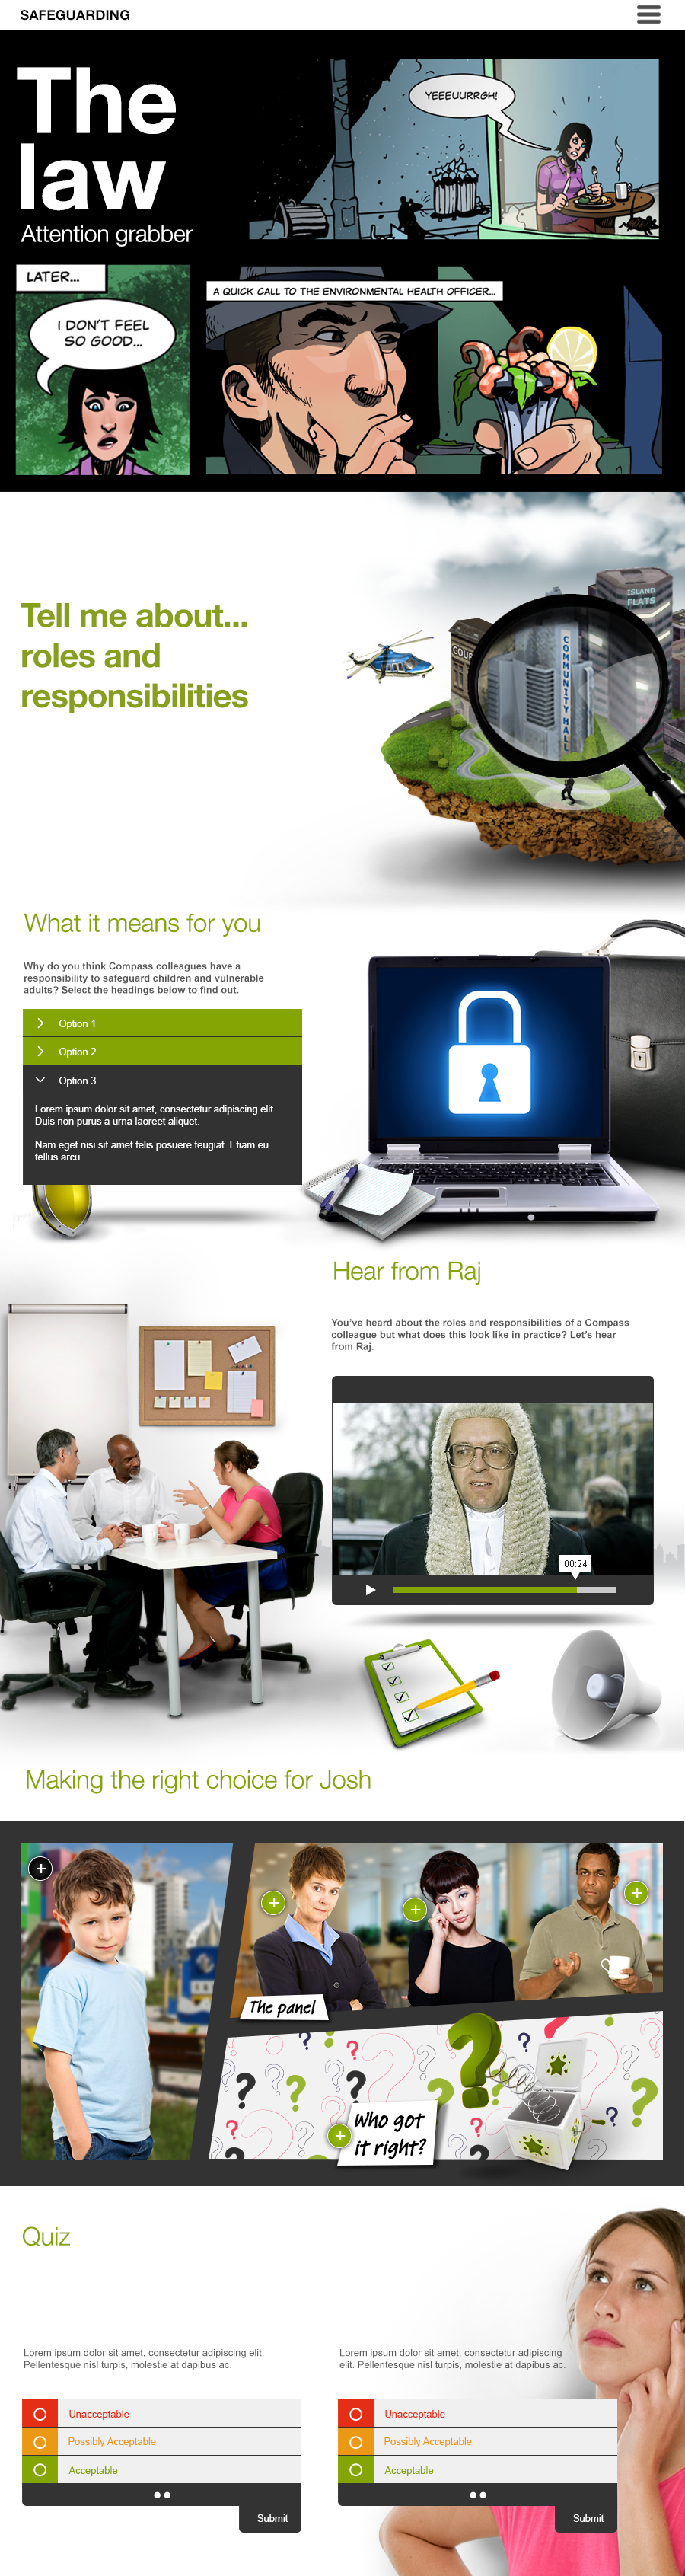 Compass Group elearning project page